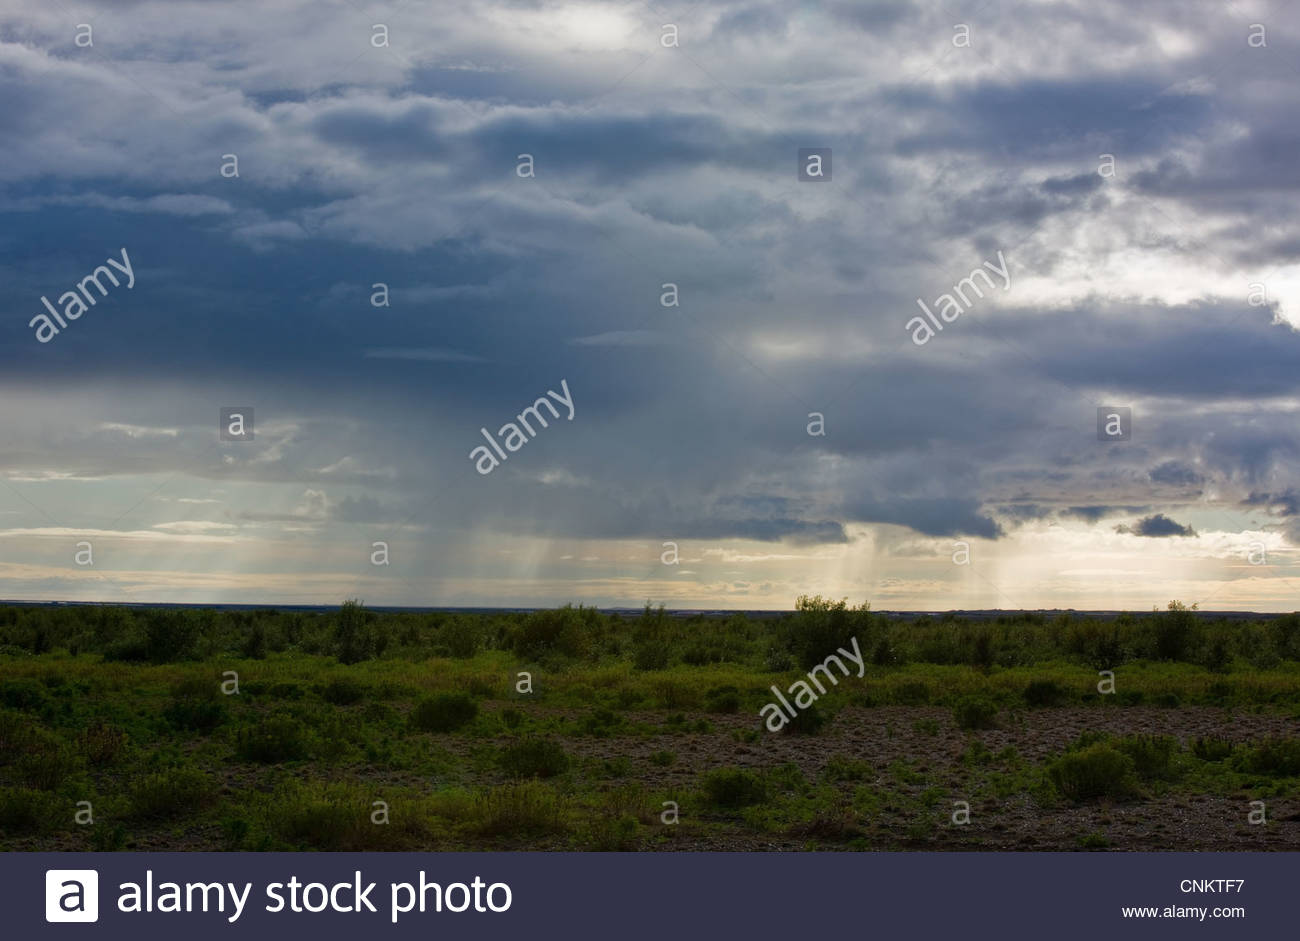 Stormy clouds over rural landscape Photo Stock